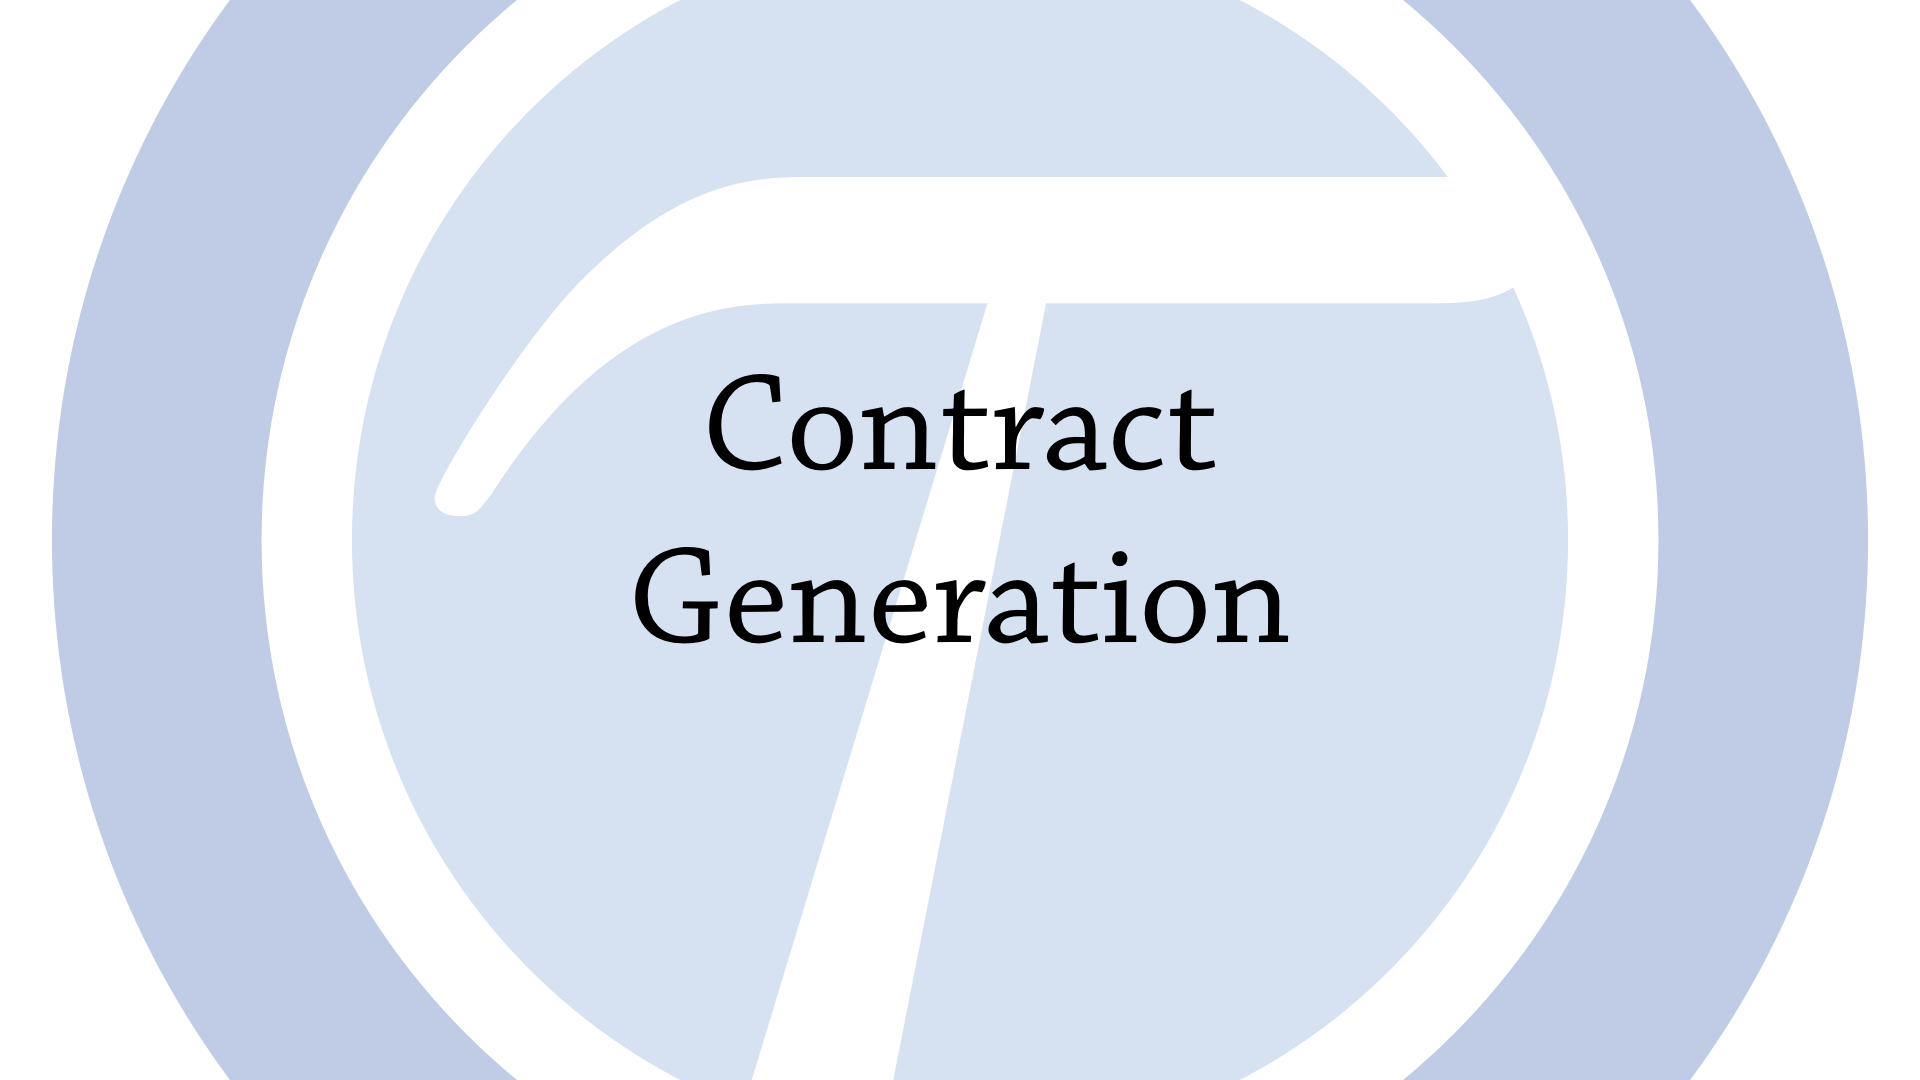 Contract generation